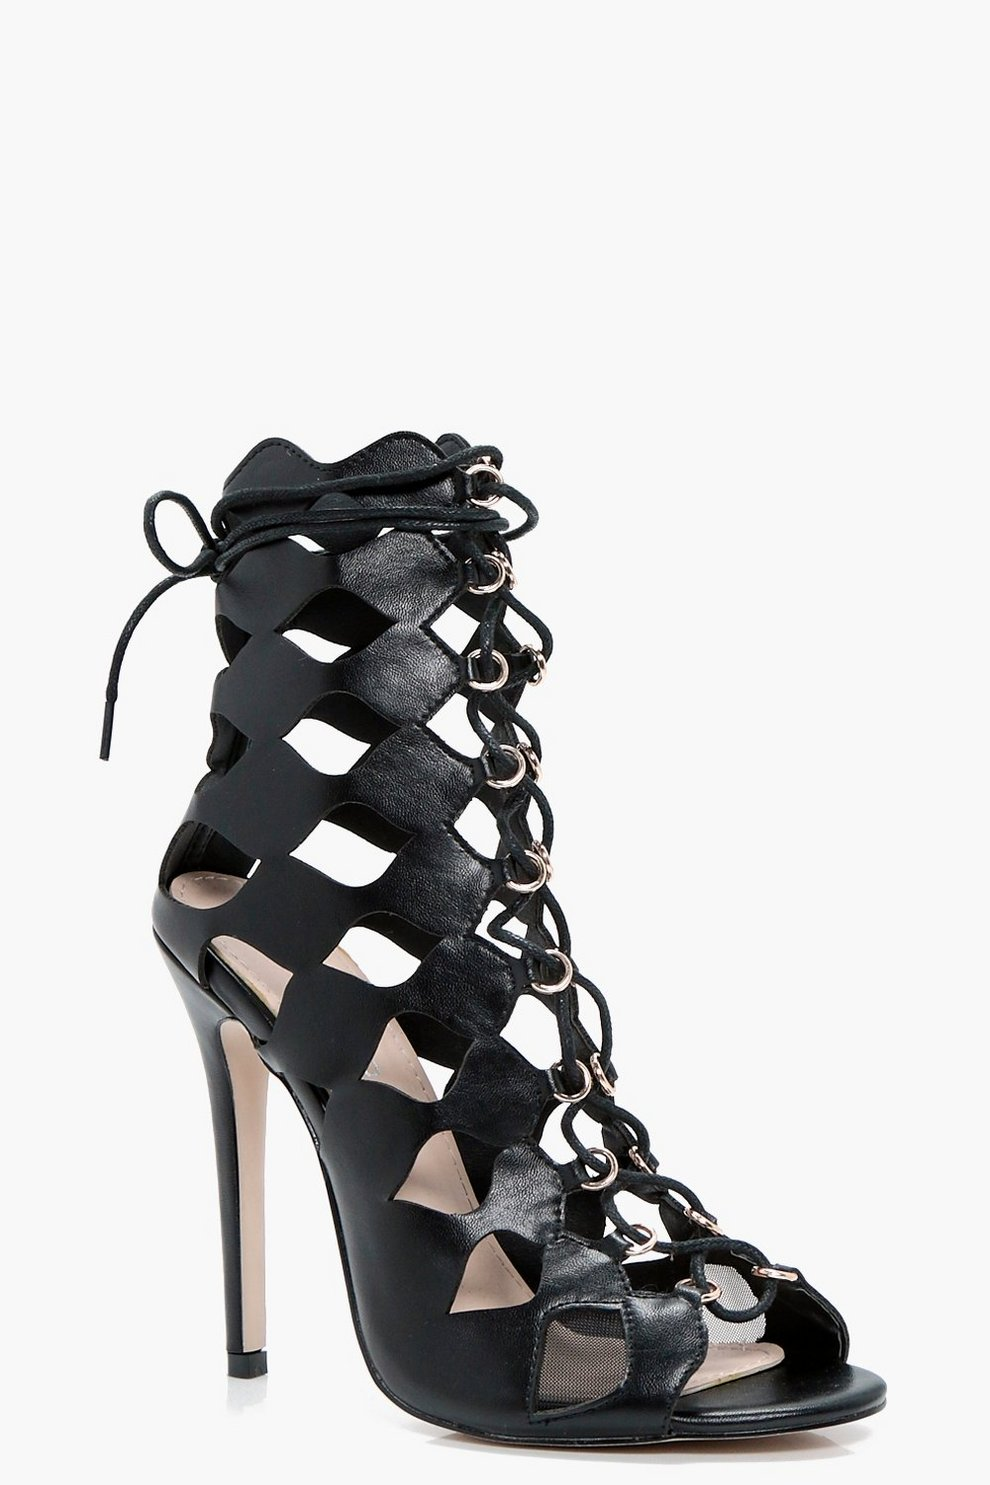 d4d0f7e331805 Zoe Cage Ghillie Lace Up Heels | Boohoo